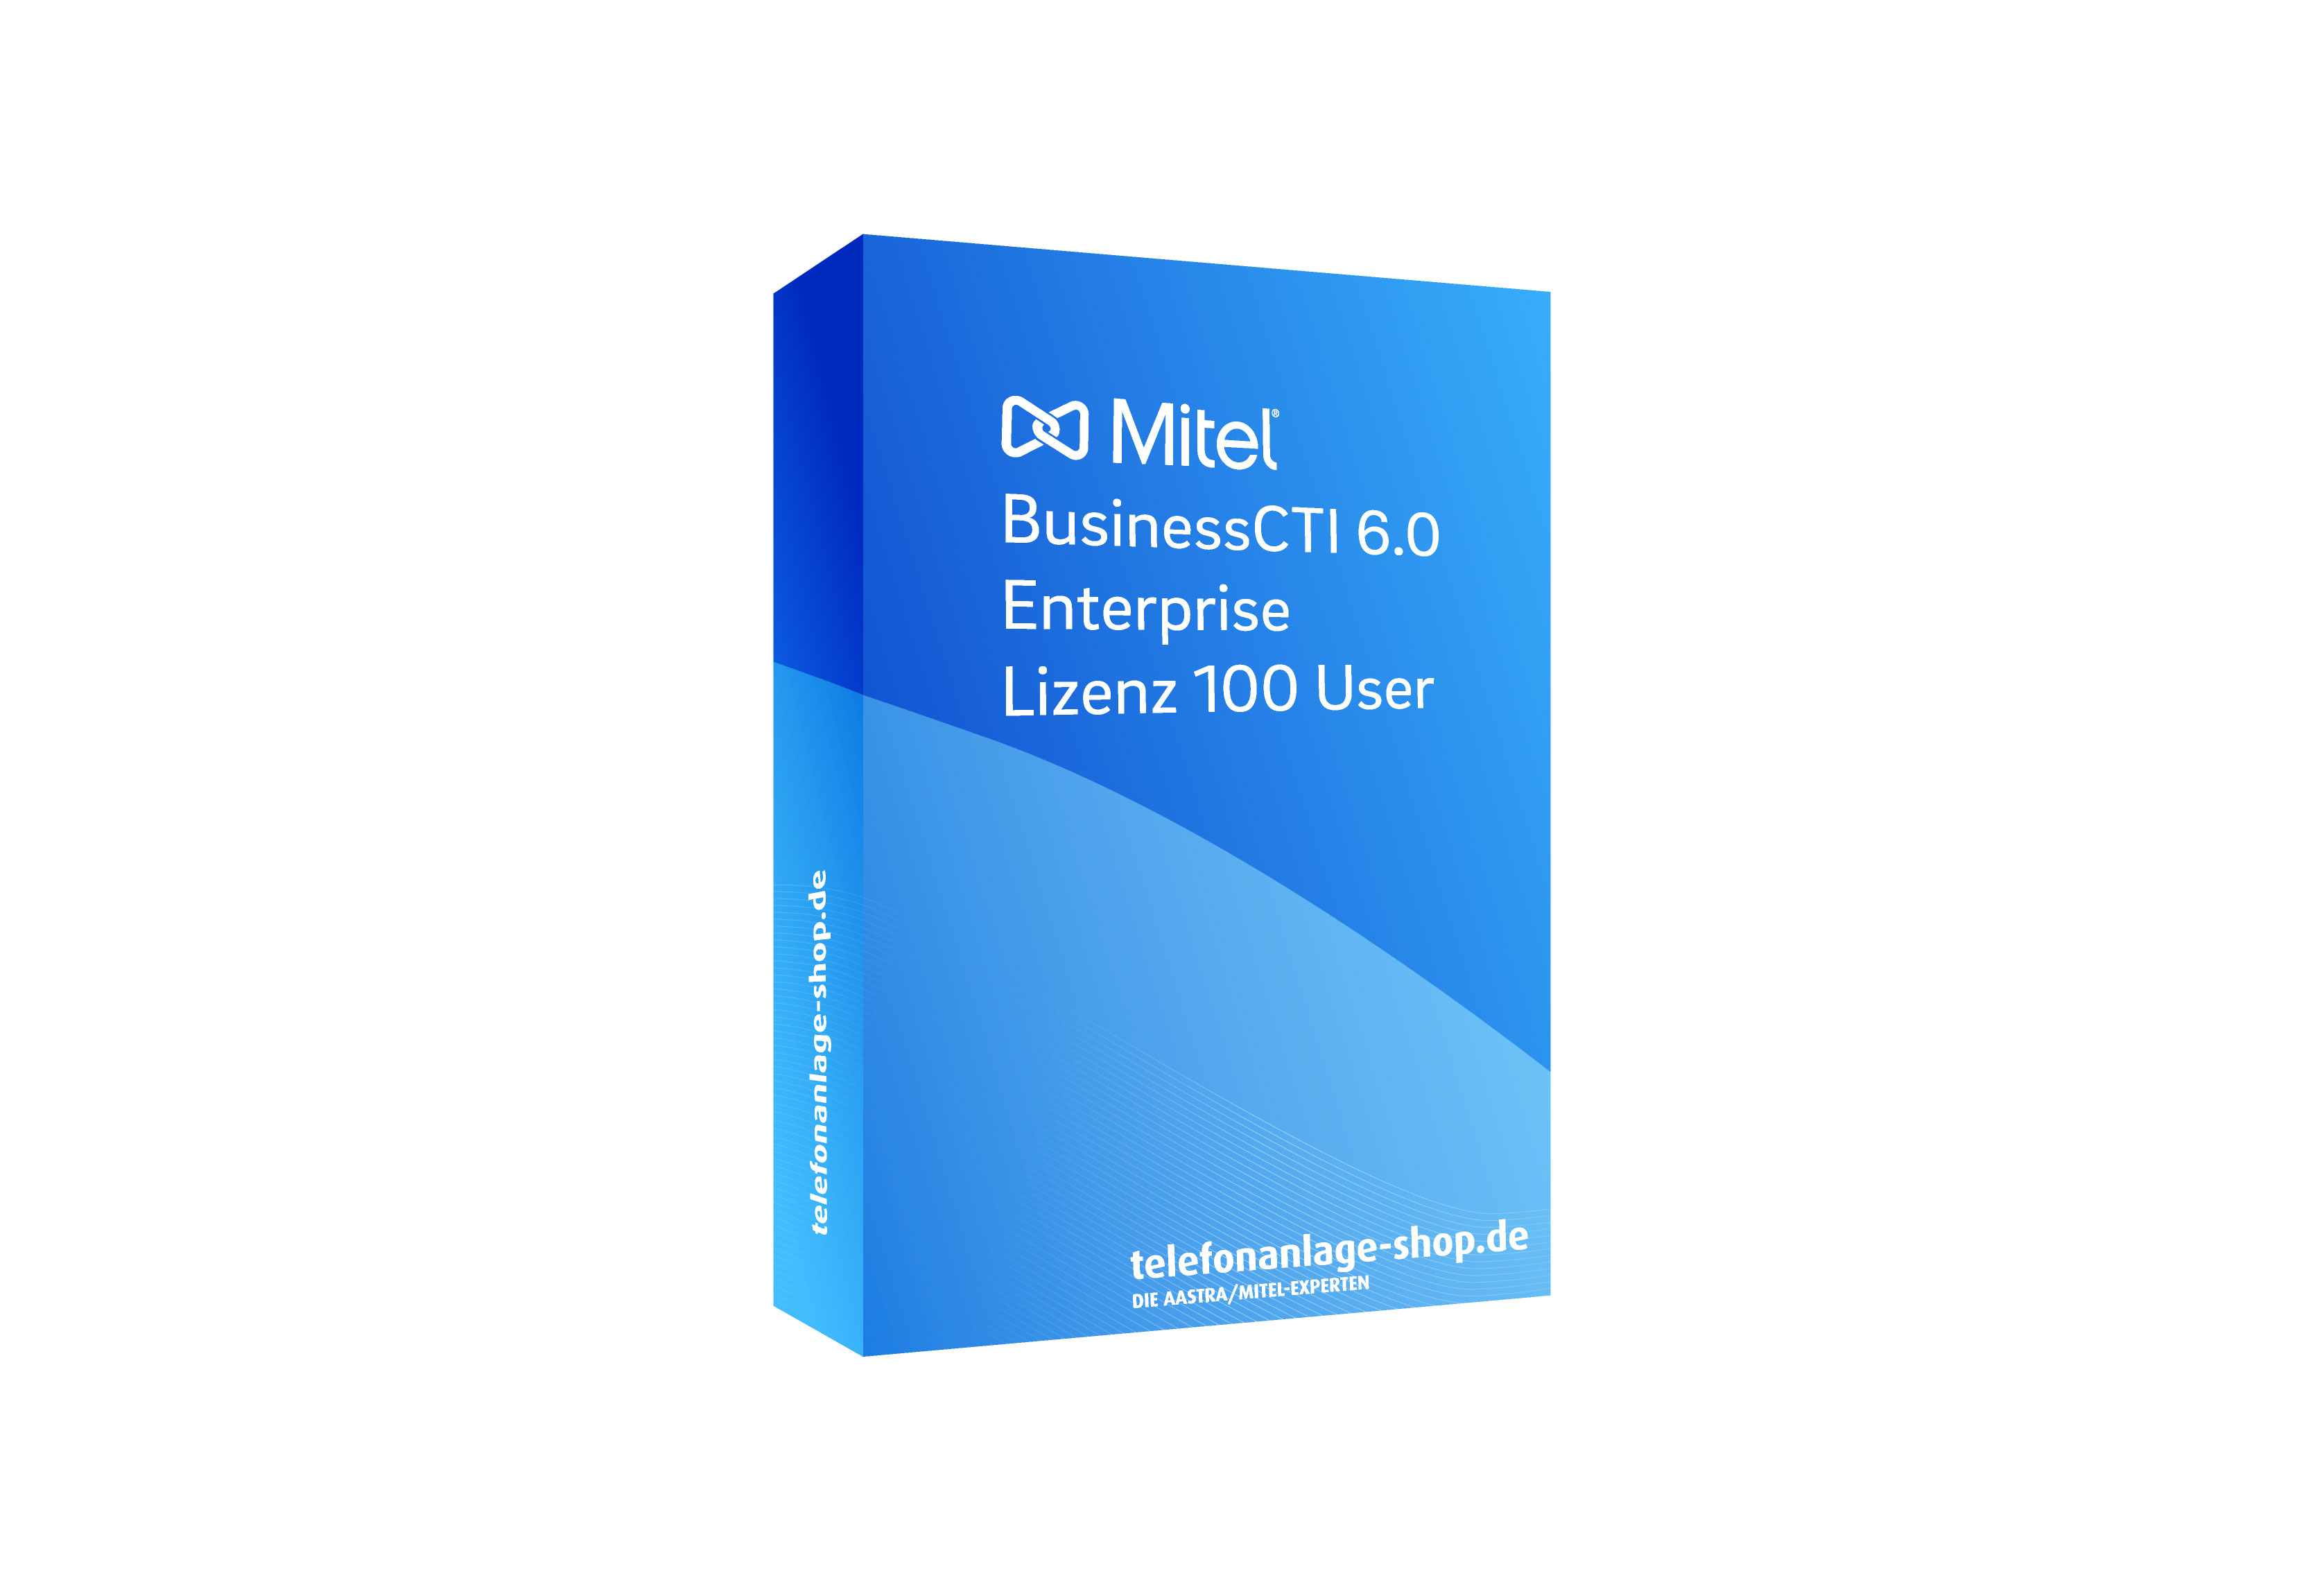 Produktbild - Mitel BusinessCTI 6.0 Enterprise Lizenz 100 User